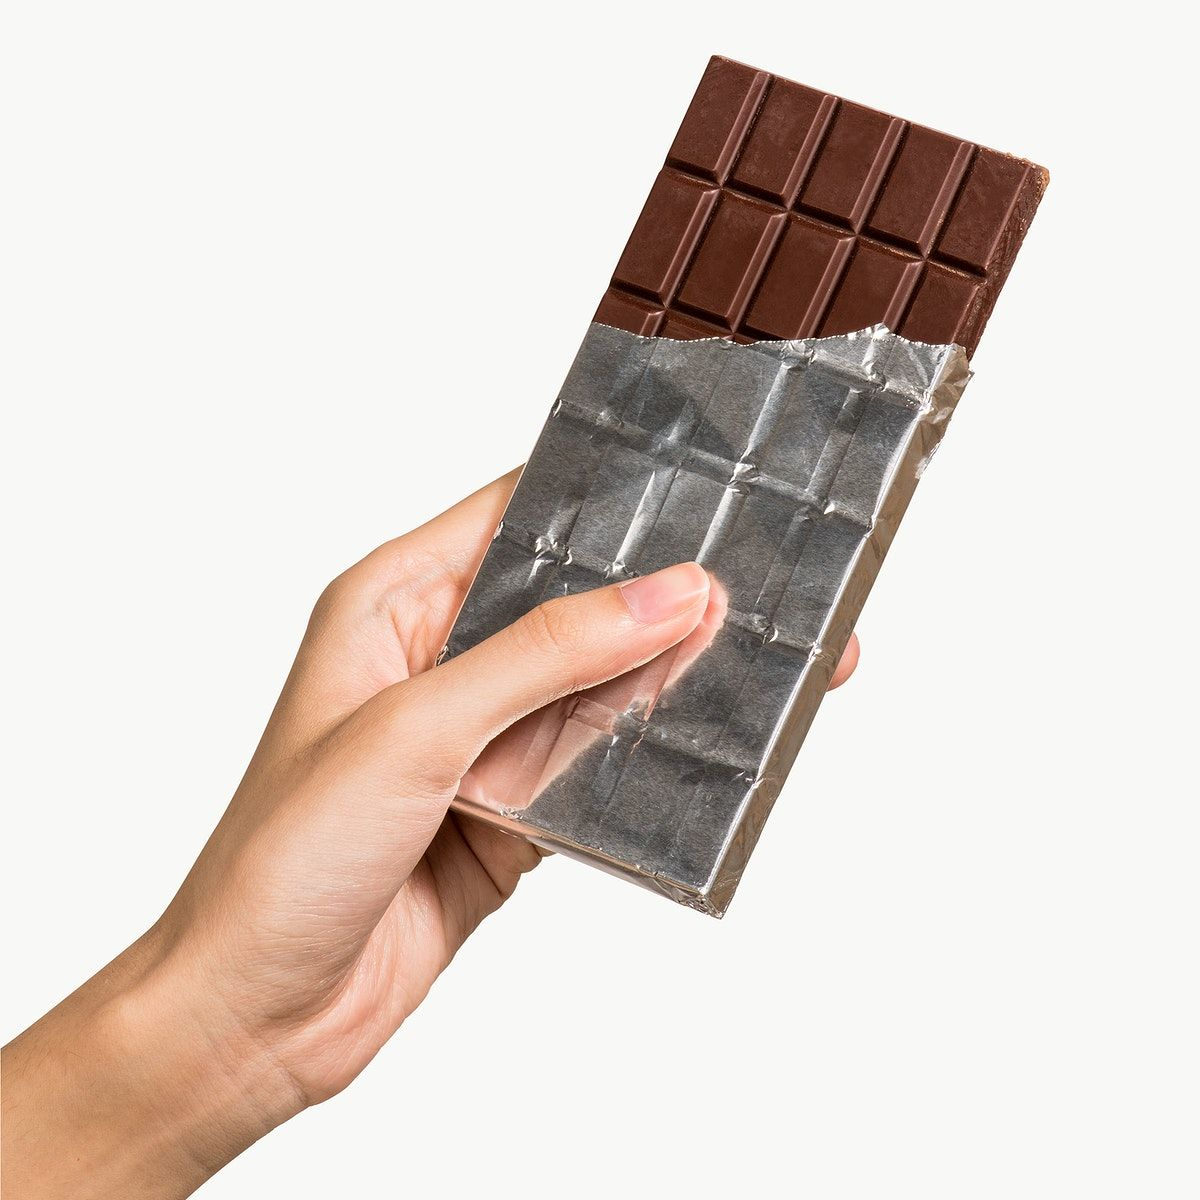 Hand Holding A Chocolate Bar In A Foiled Package Design Element Free Image By Rawpixel Com Jira Chocolate Bar Chocolate Chocolate Banana Milkshake